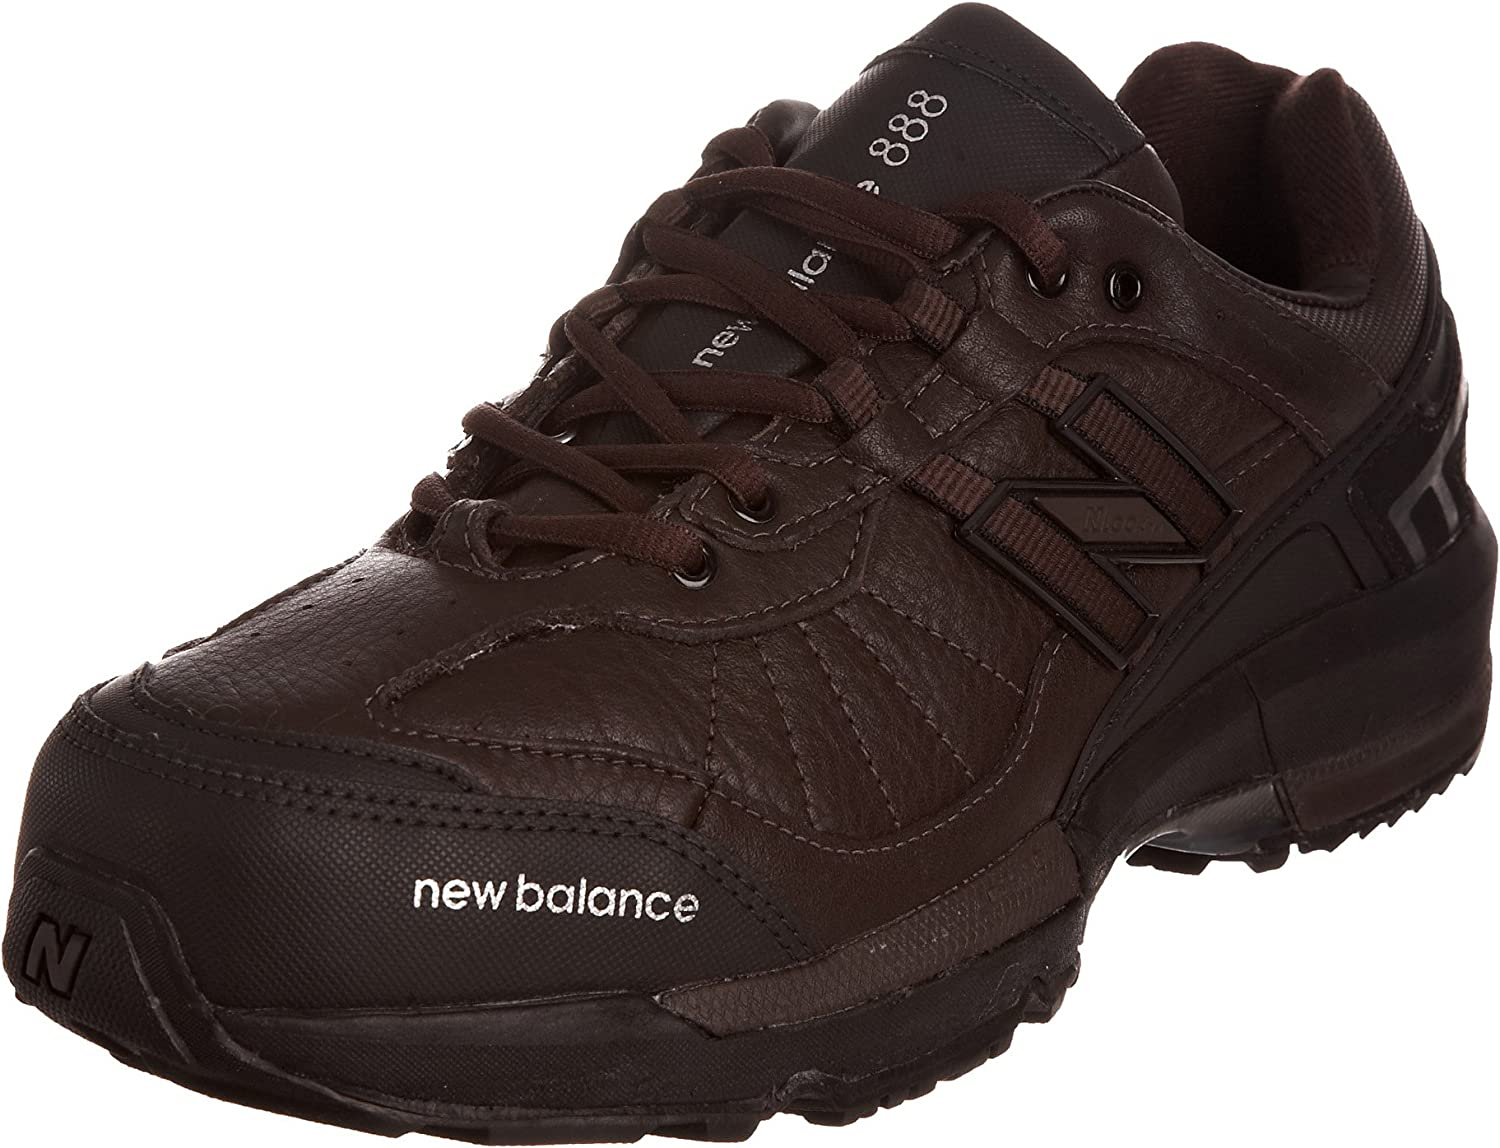 New Balance 888, Men's Hiking shoes